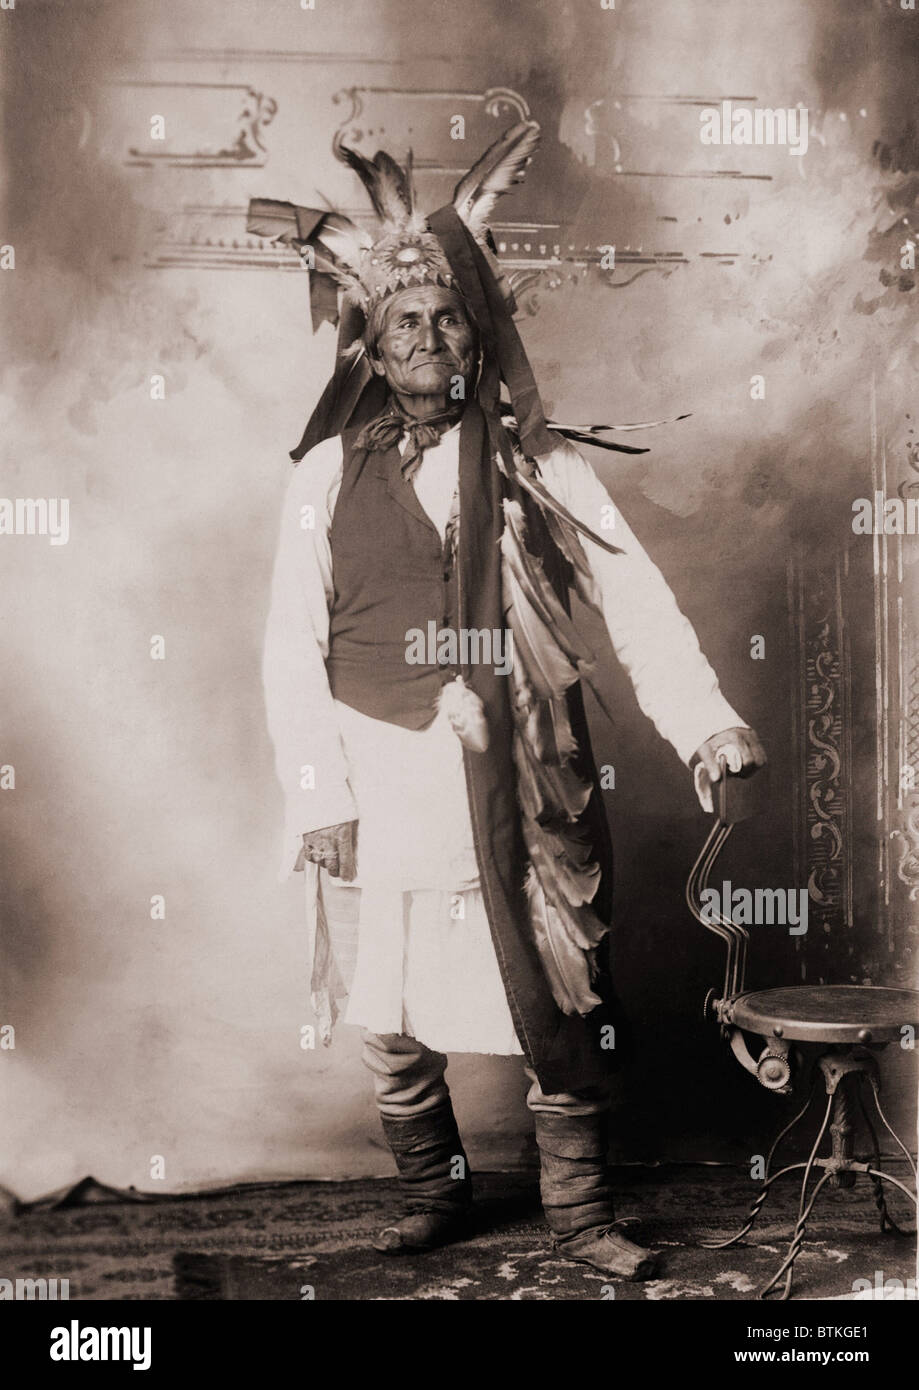 Geronimo (1829-1909), Chiricahua Apache warrior in Indian clothing and feathered headdress. 1906 studio portrait. Stock Photo